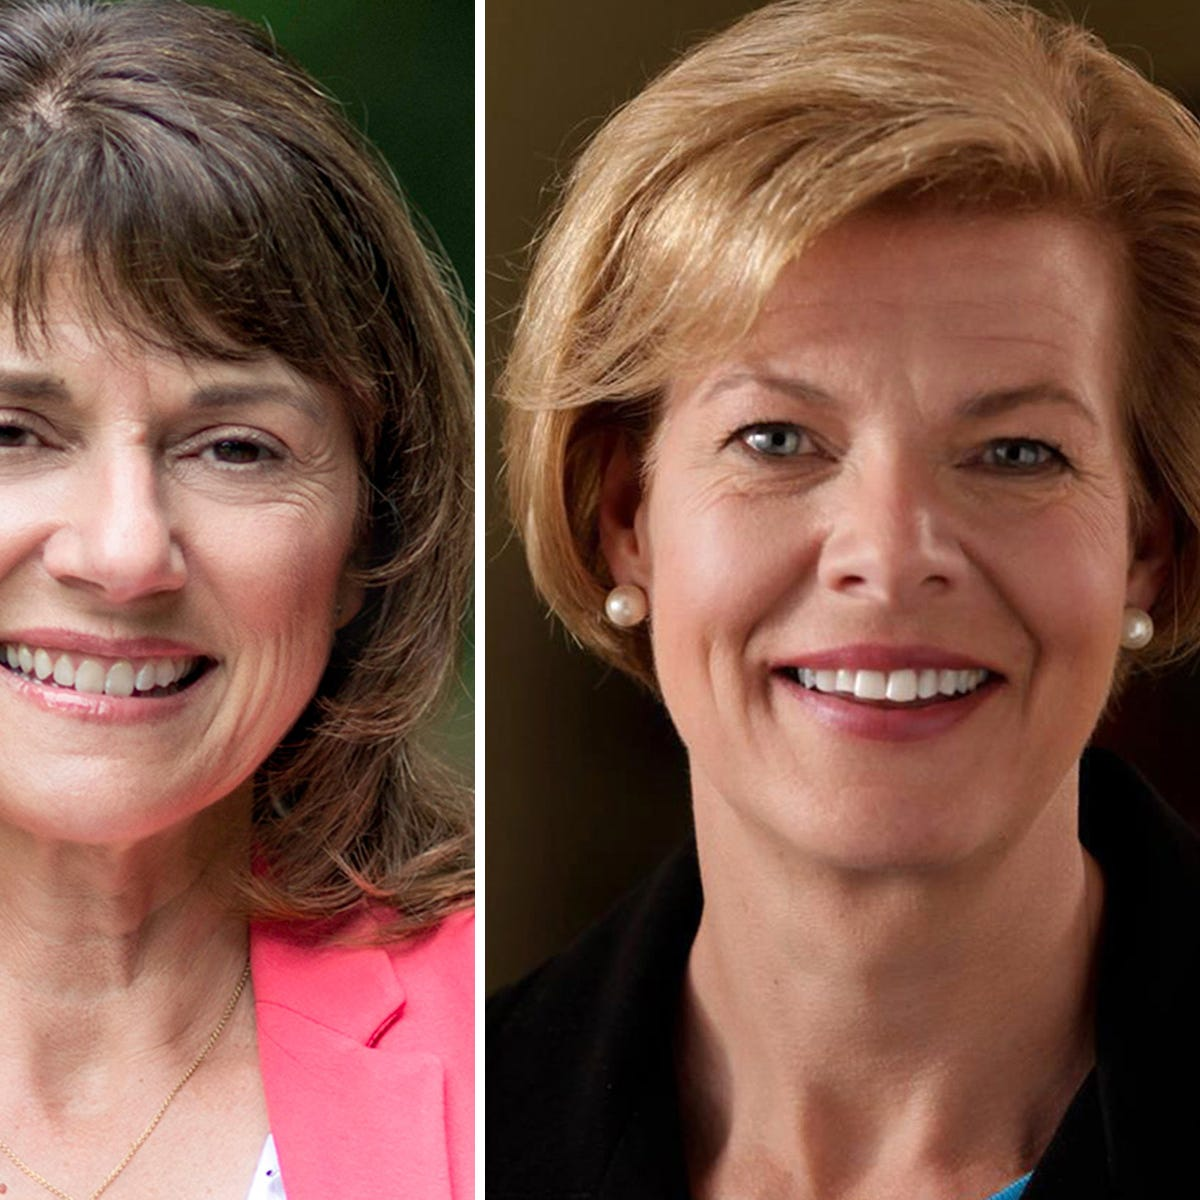 Marquette poll: Tammy Baldwin opens wide margin over Leah Vukmir in U.S. Senate race